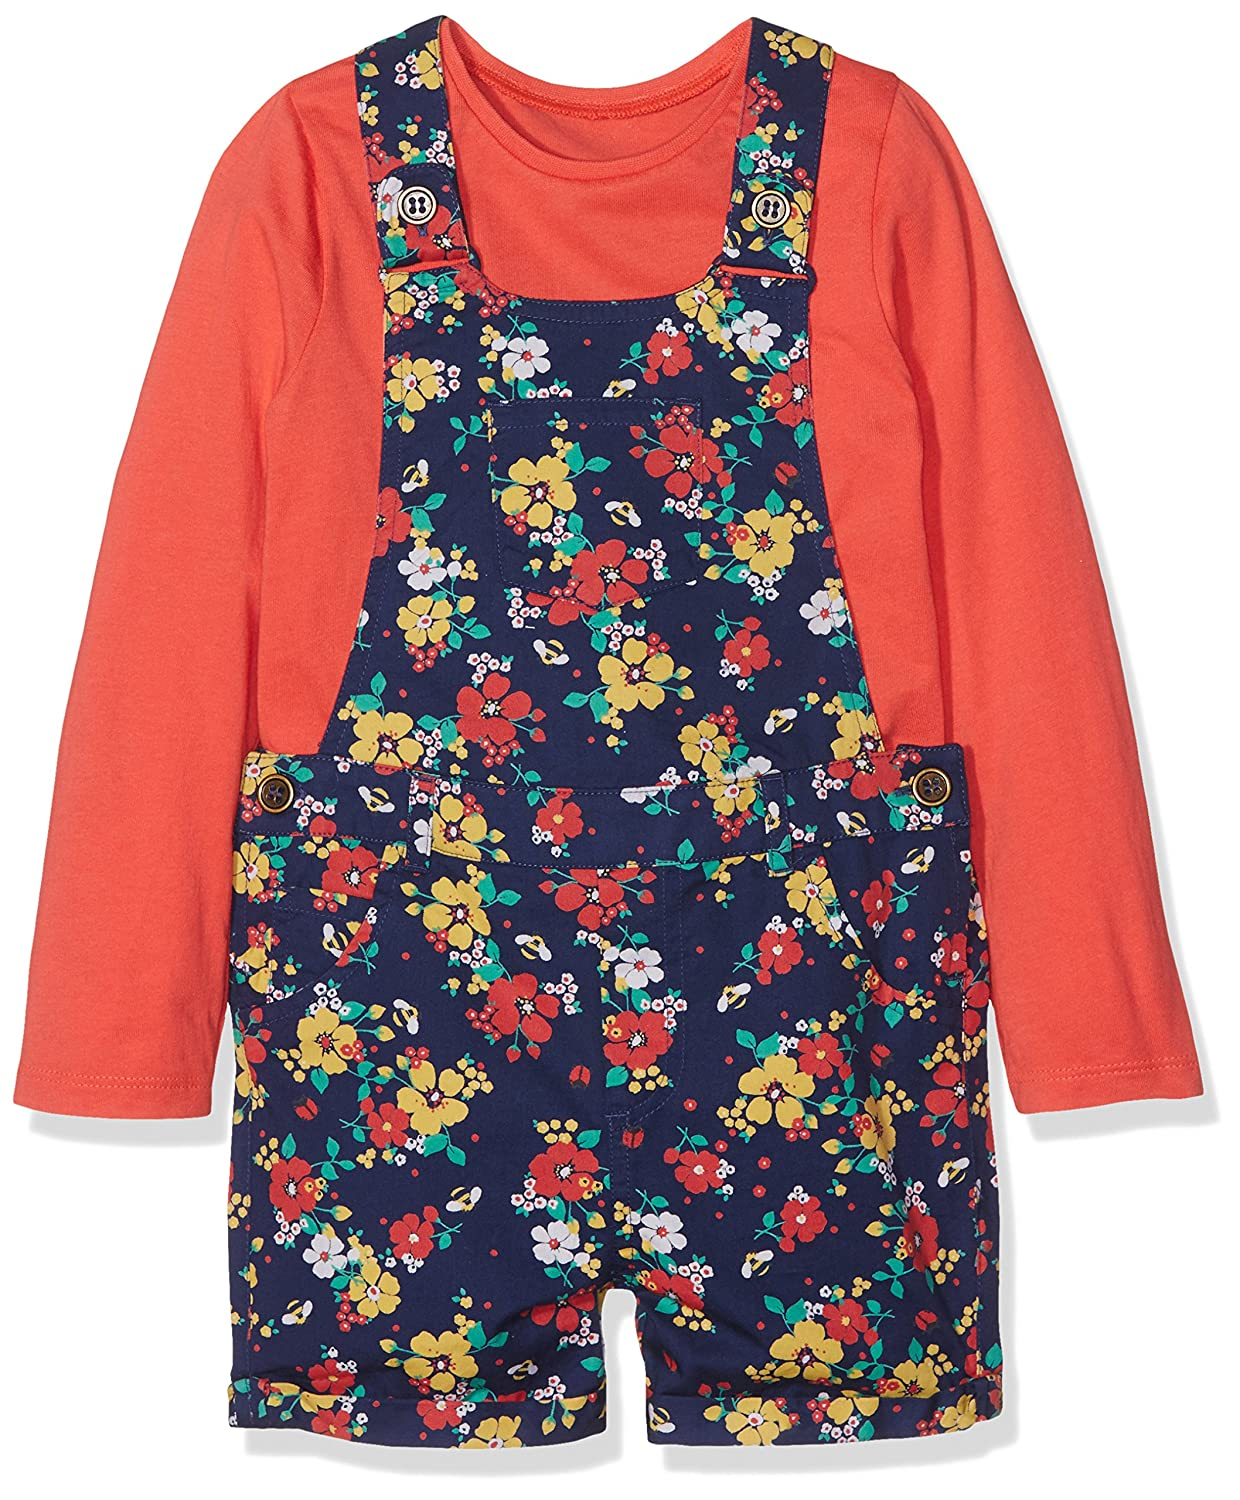 Floral Bibshorts, T-Shirt and Tights Set Blue Mothercare 86515_3